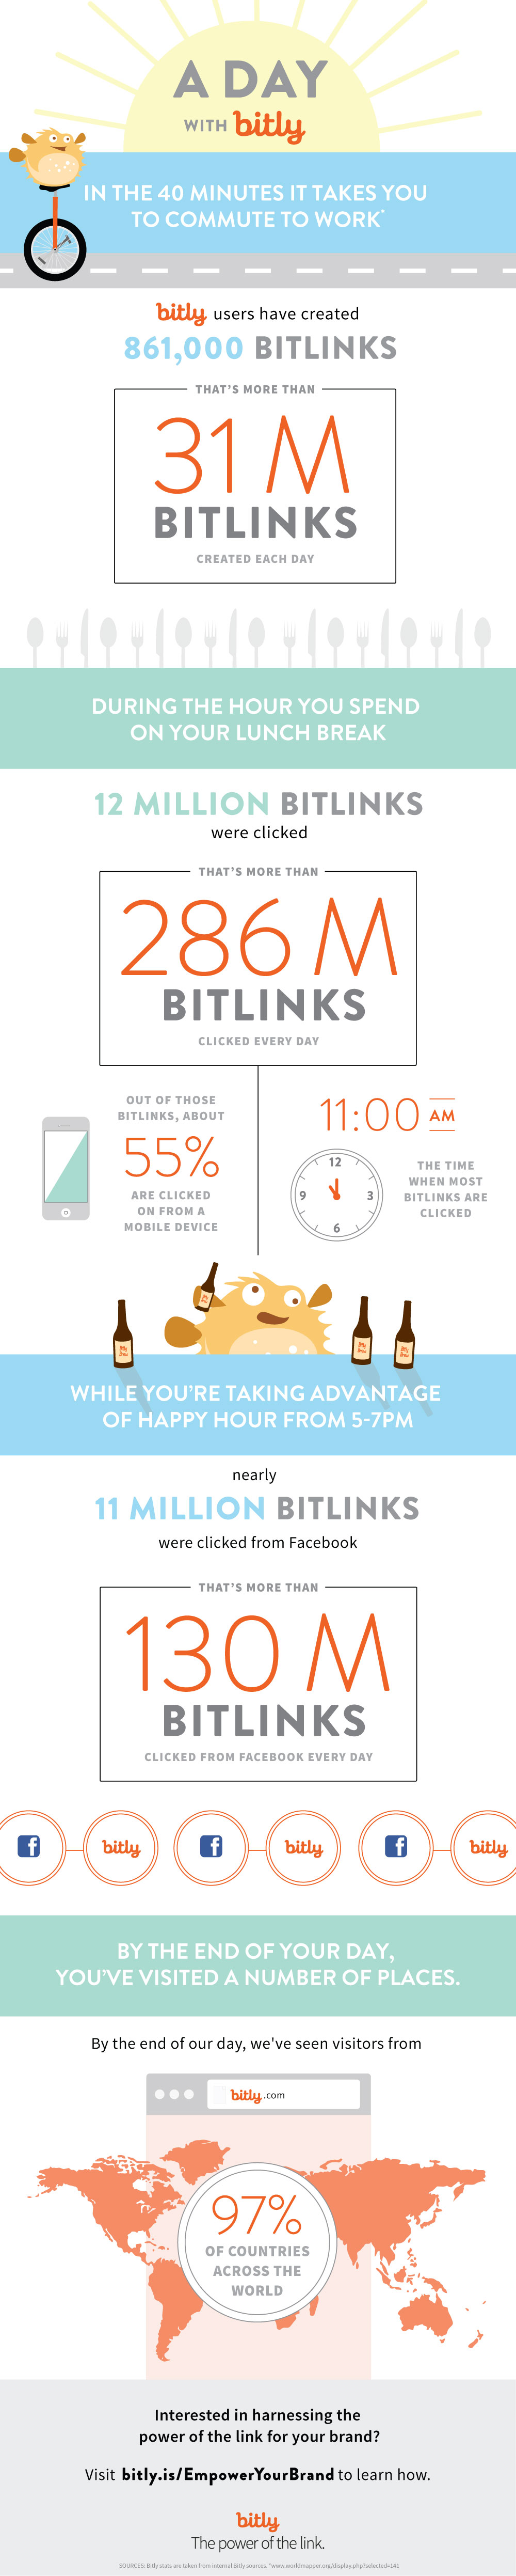 wersm_adaywith_bitly_infographic